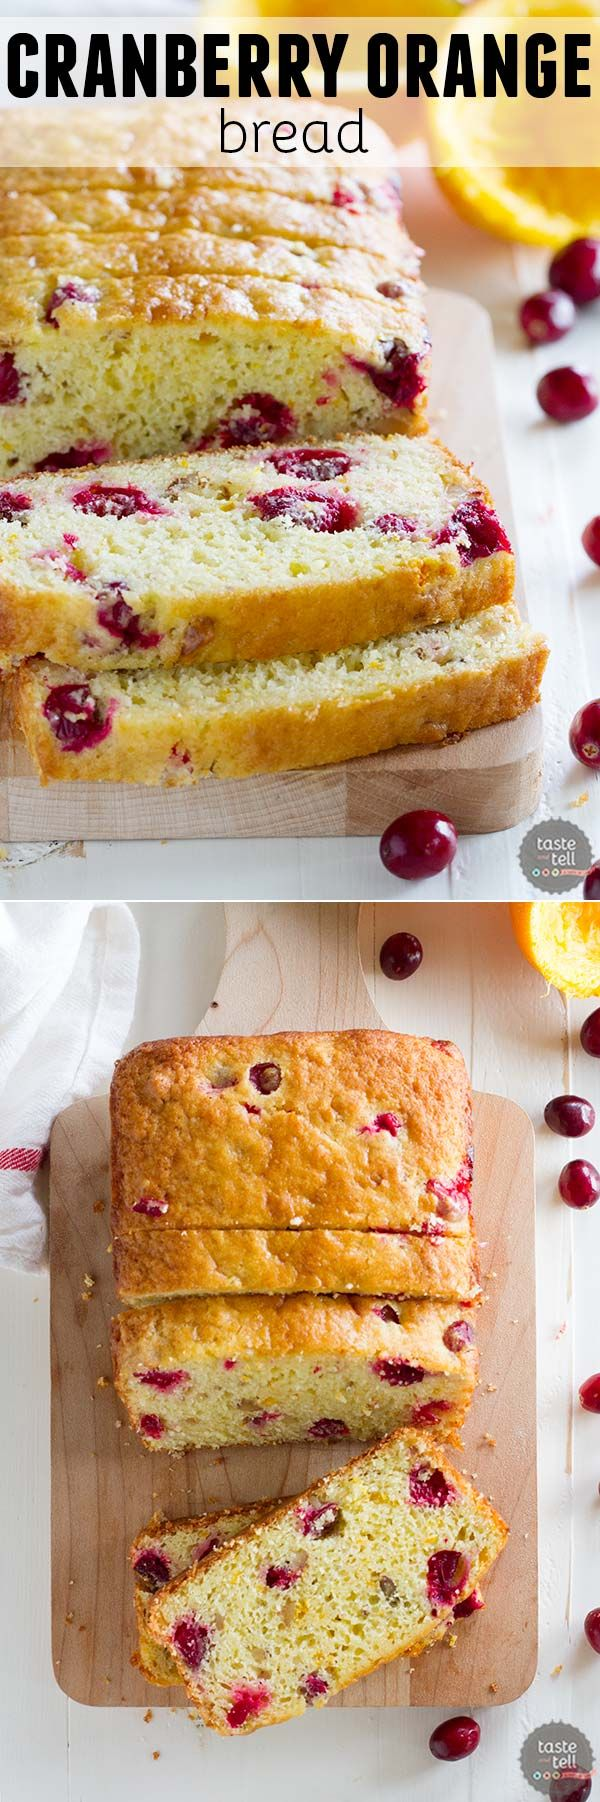 Tart cranberries and sweet orange juice combine to make this Cranberry Orange Bread that is perfect for breakfast or brunch, or even for dessert!